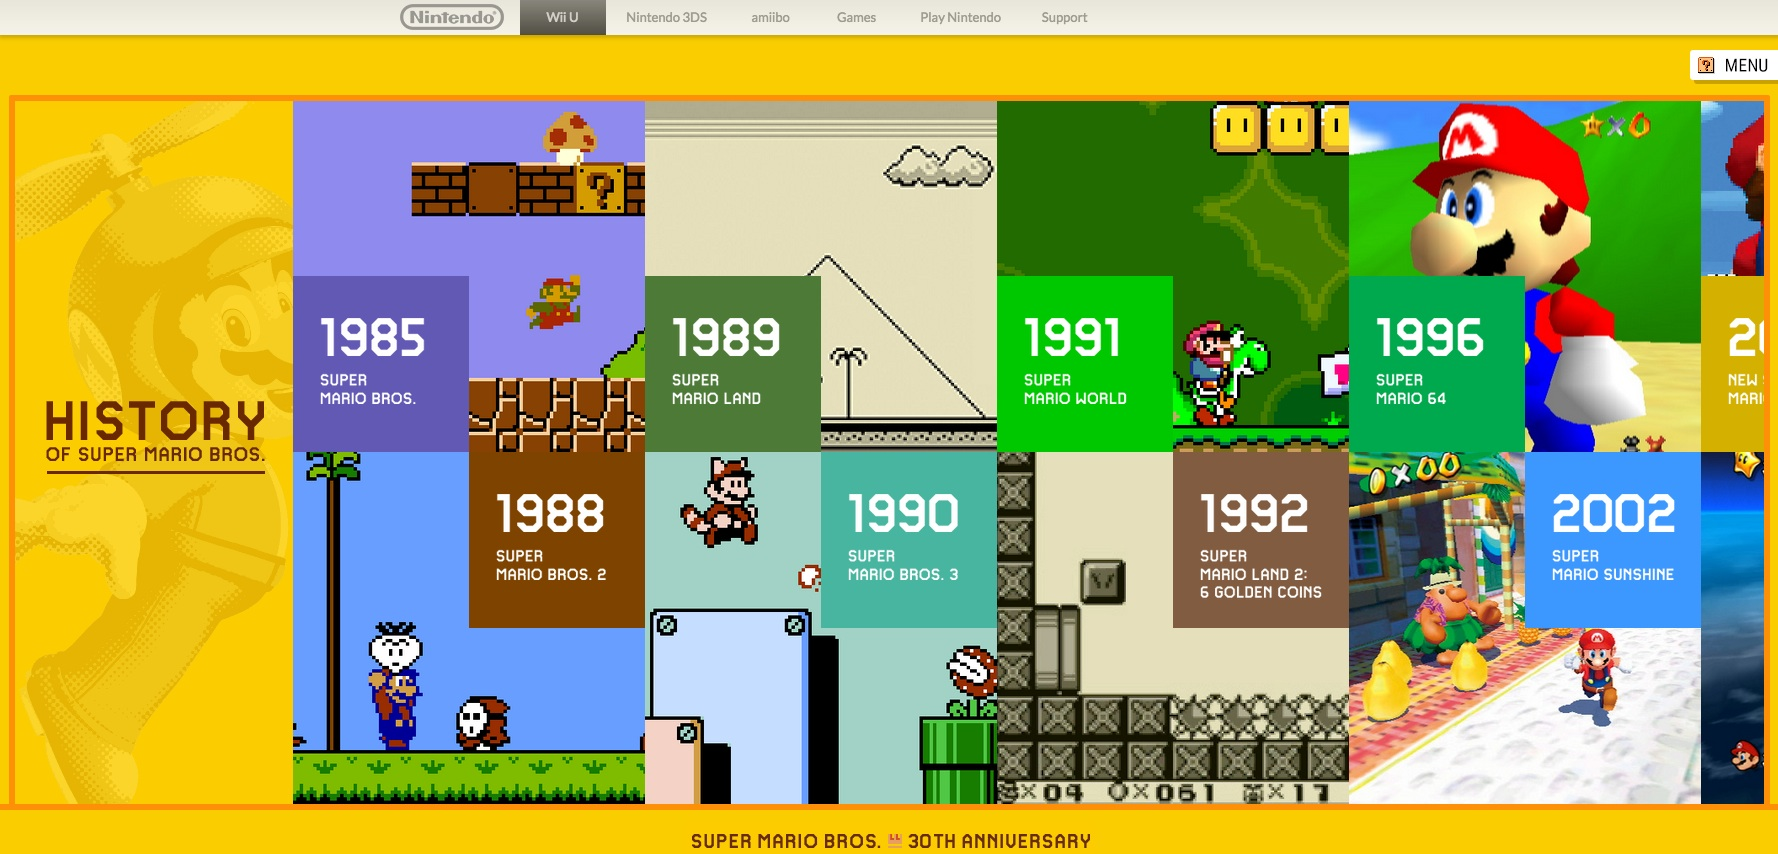 Nintendo celebrates the 30th anniversary of 'Super Mario Bros.' with a new game